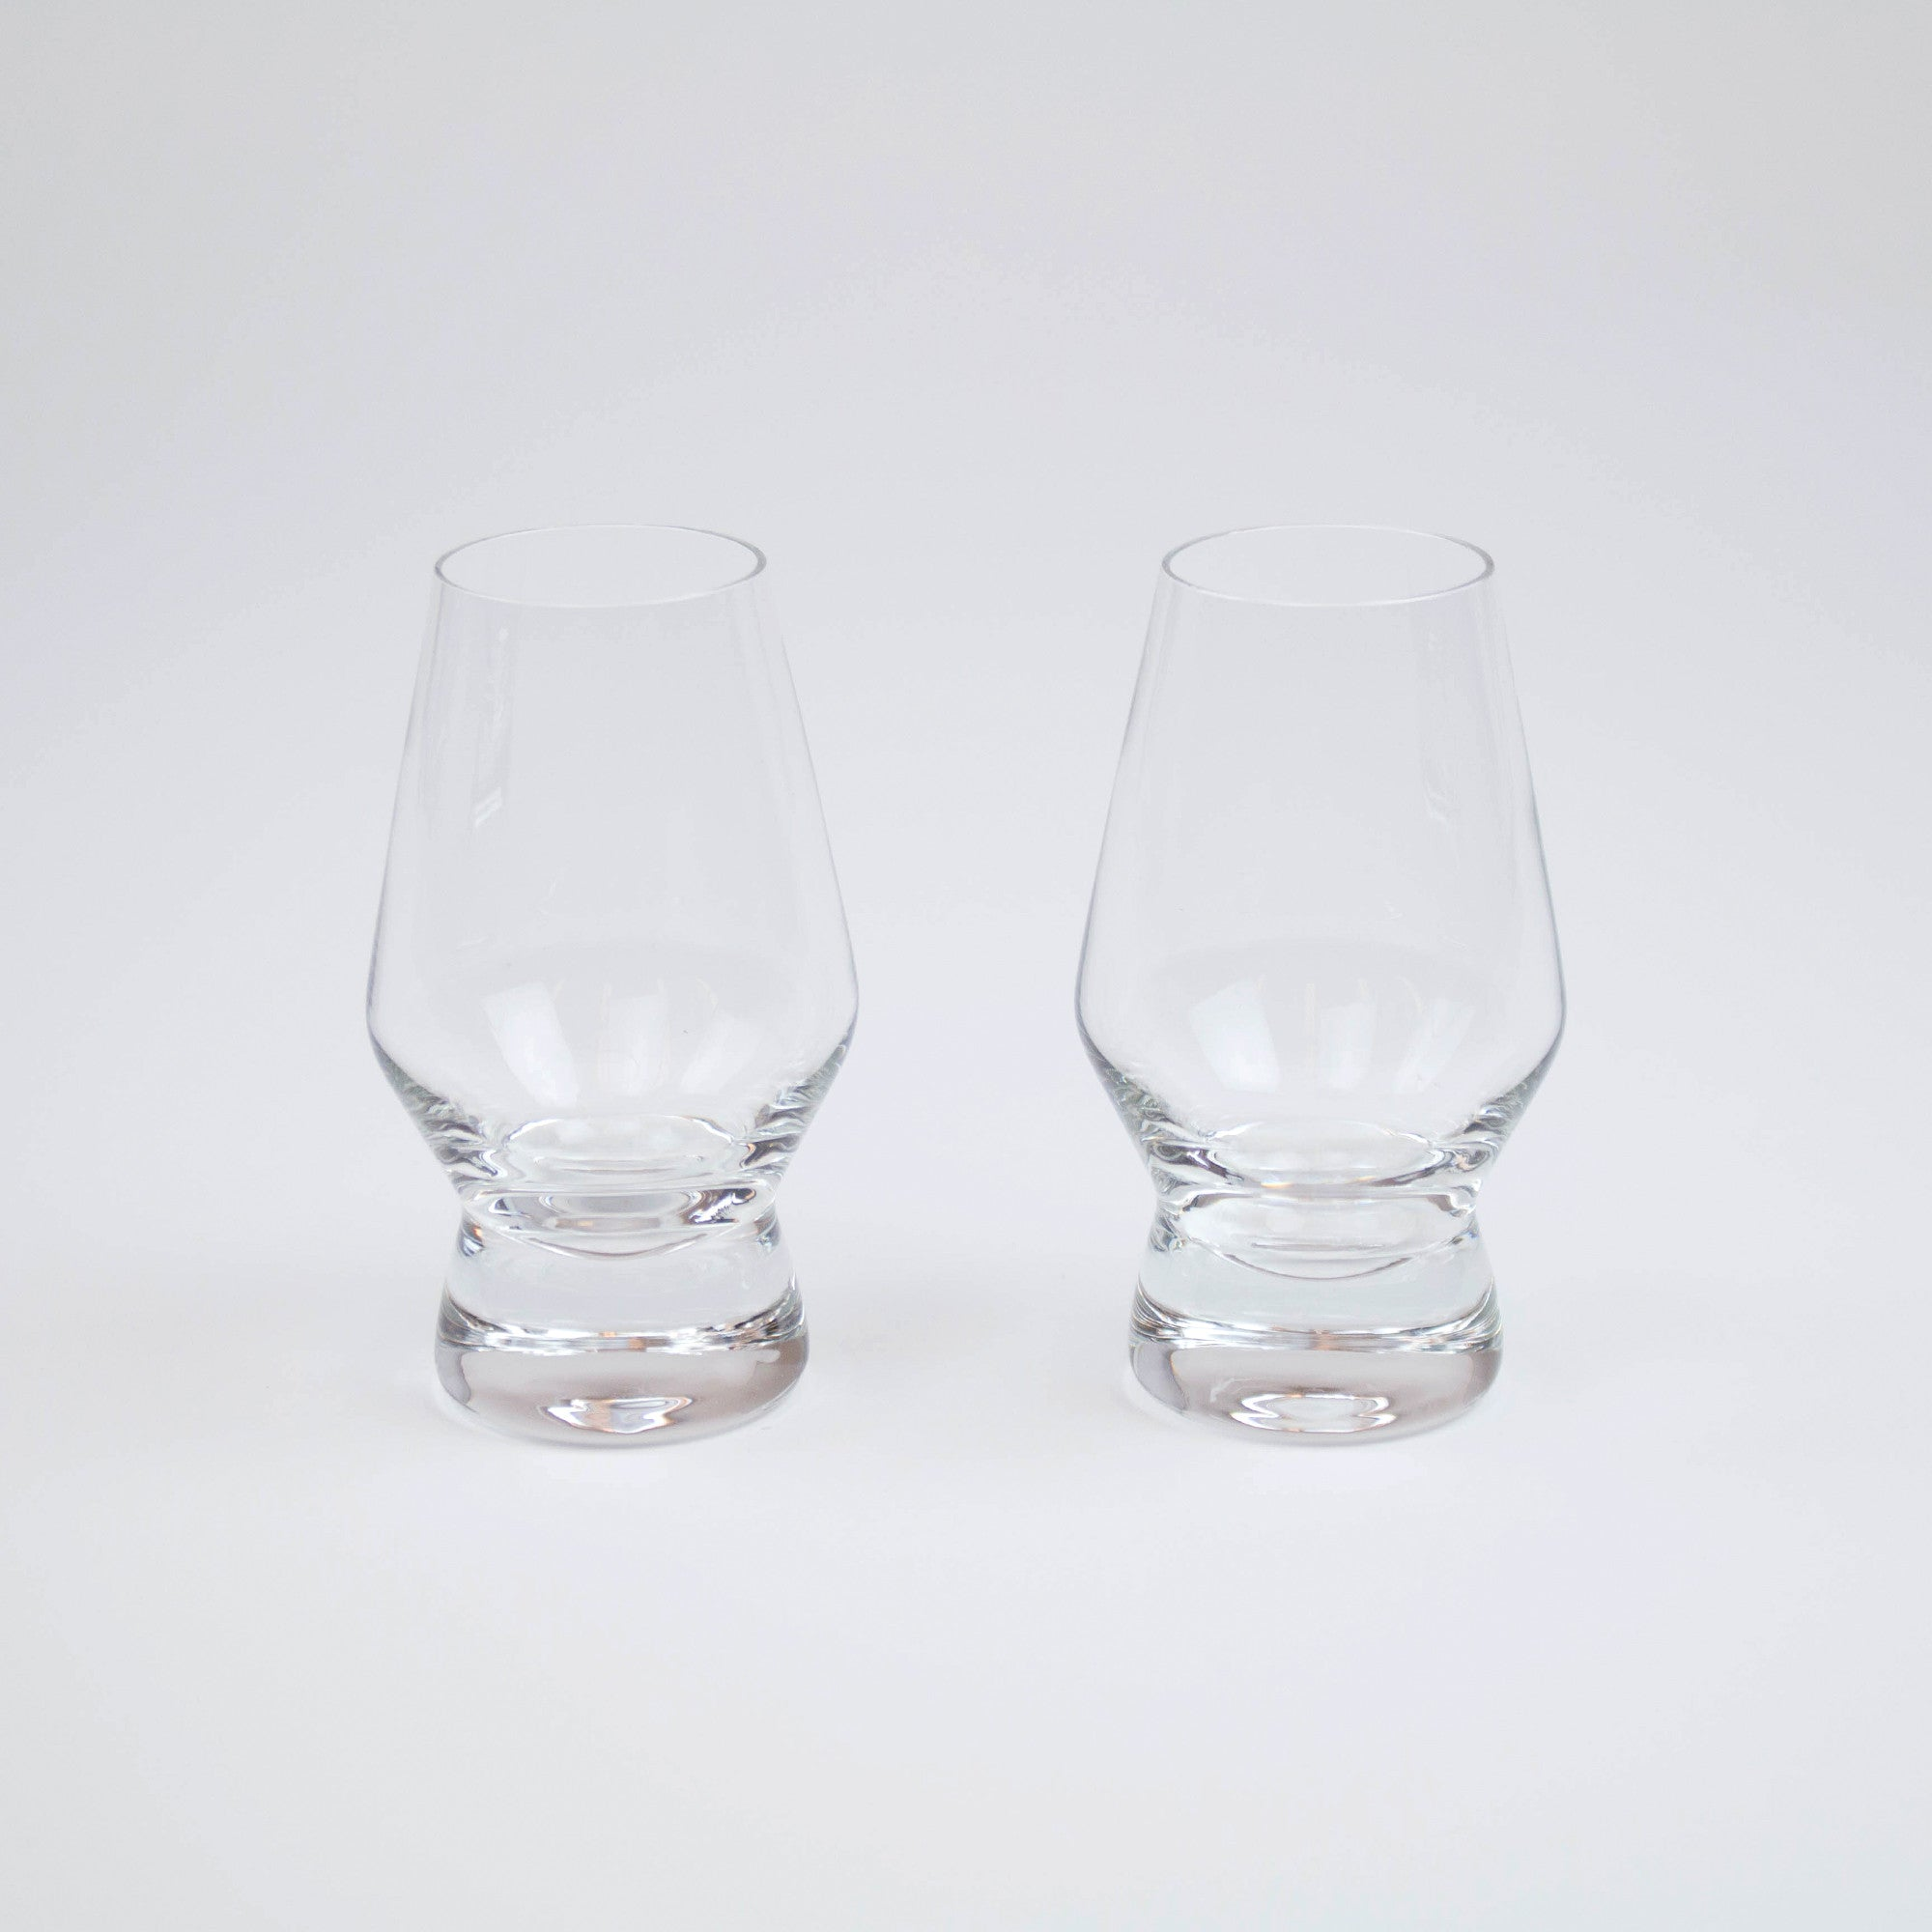 Crystal Scotch Glass (Set of 2)